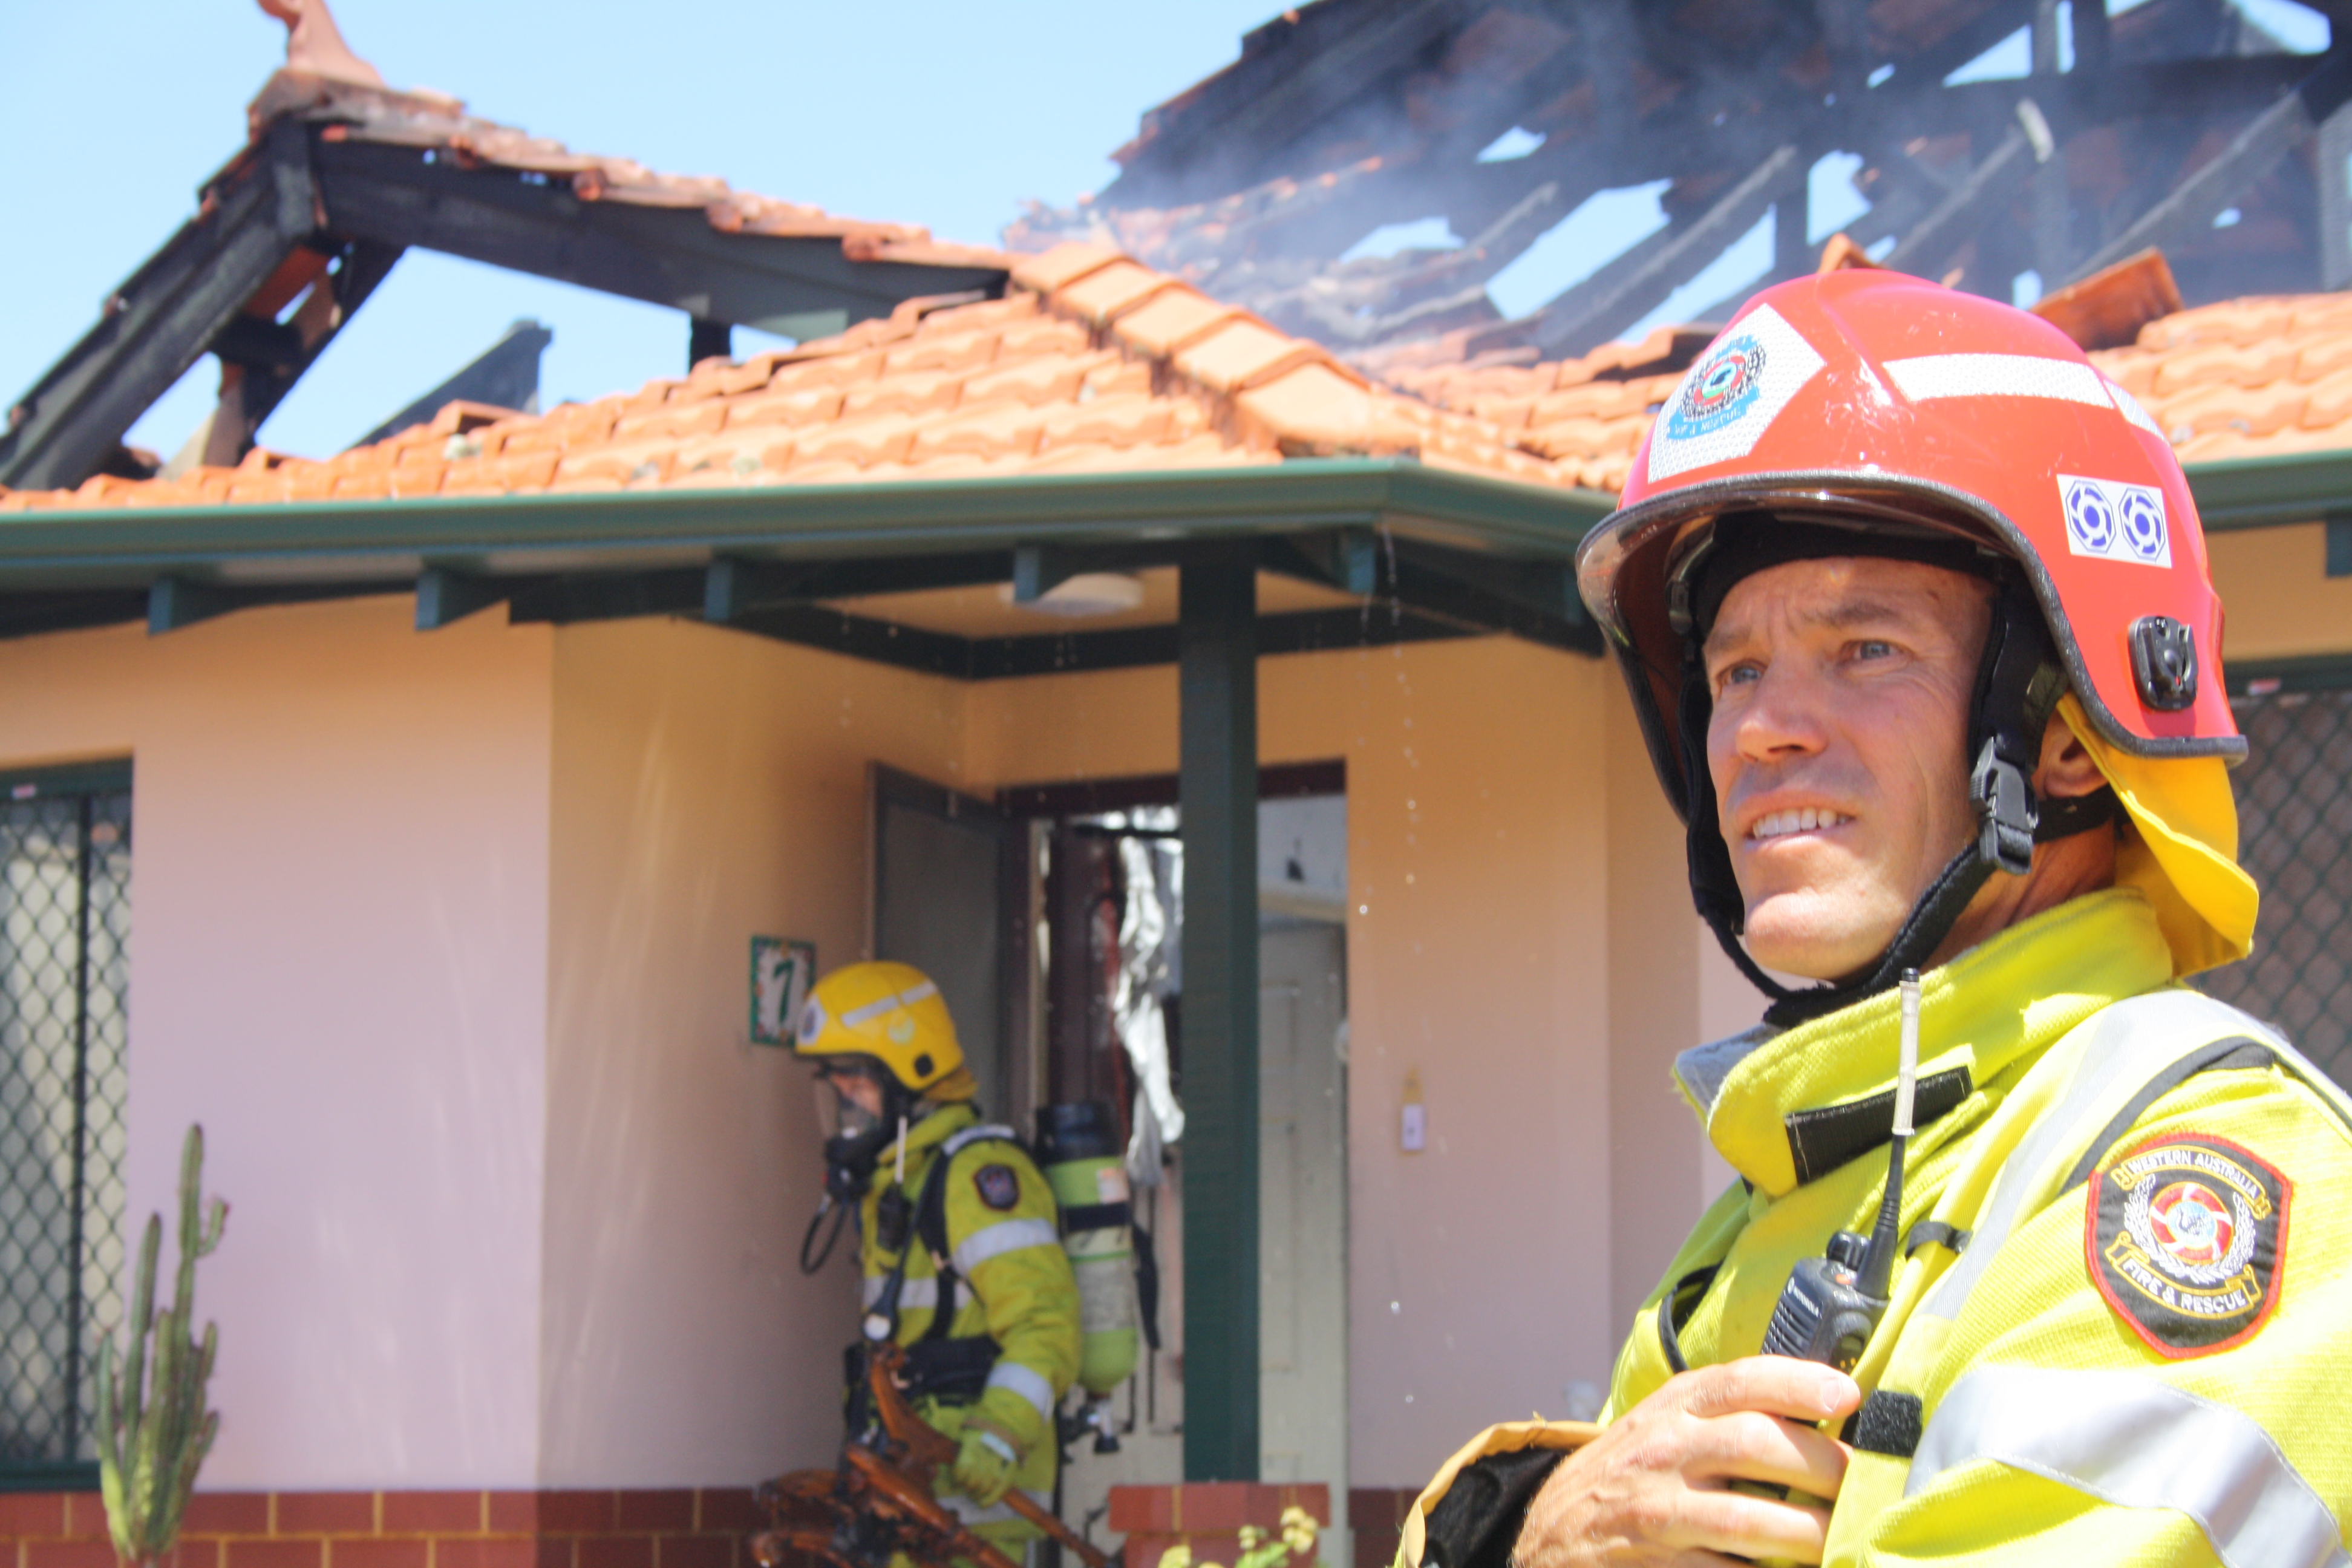 More than 20 fire fighters attended the blaze. Photo: Giovanni Torre